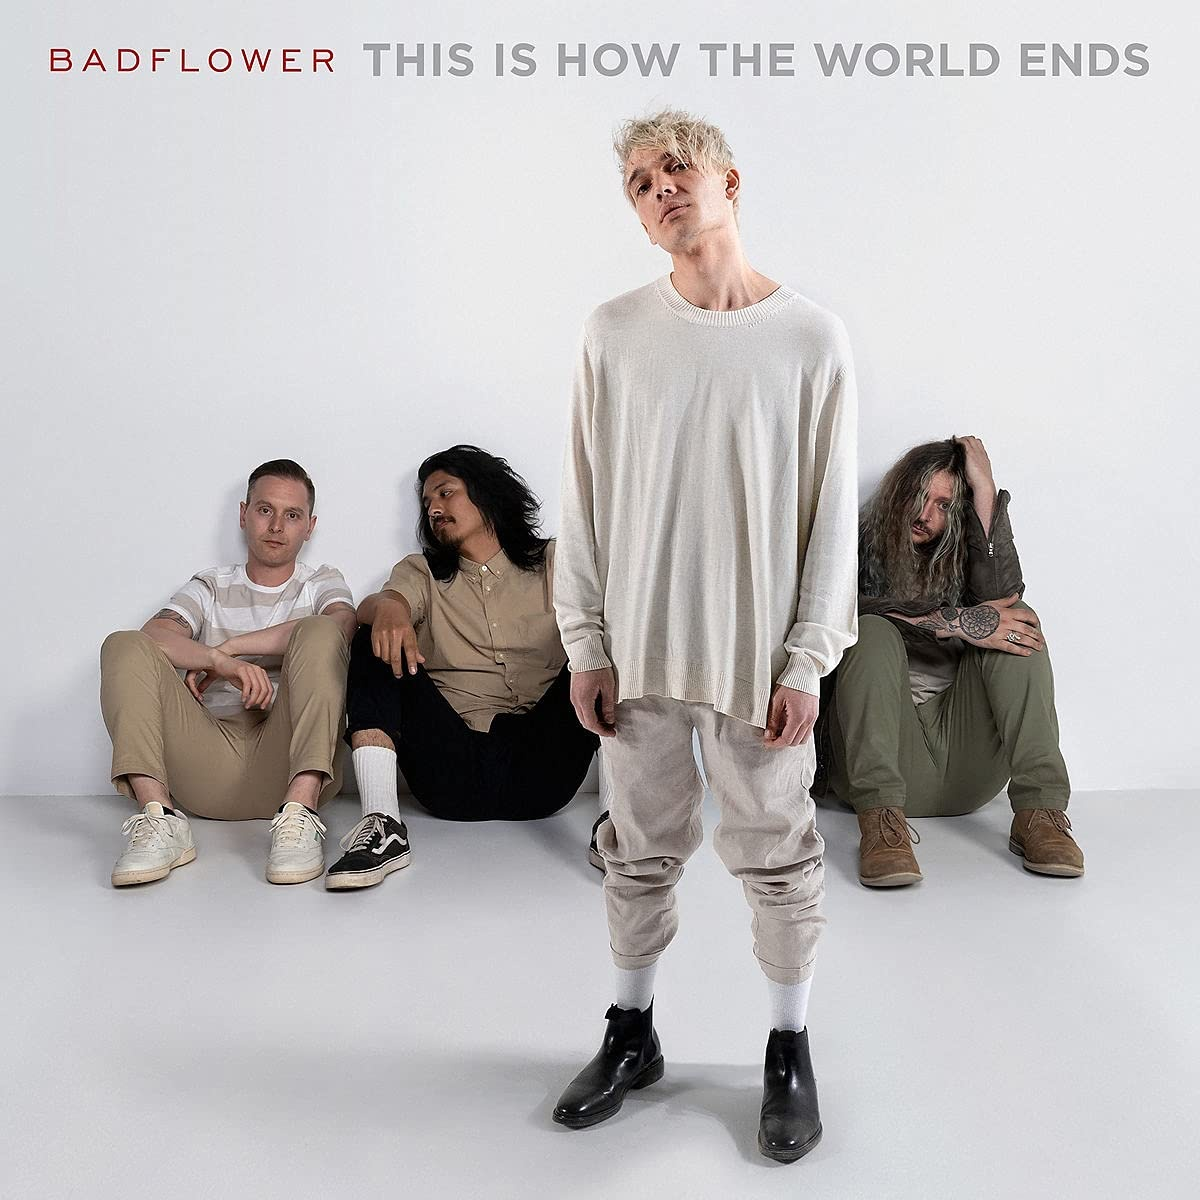 Badflower This Is How The World Ends